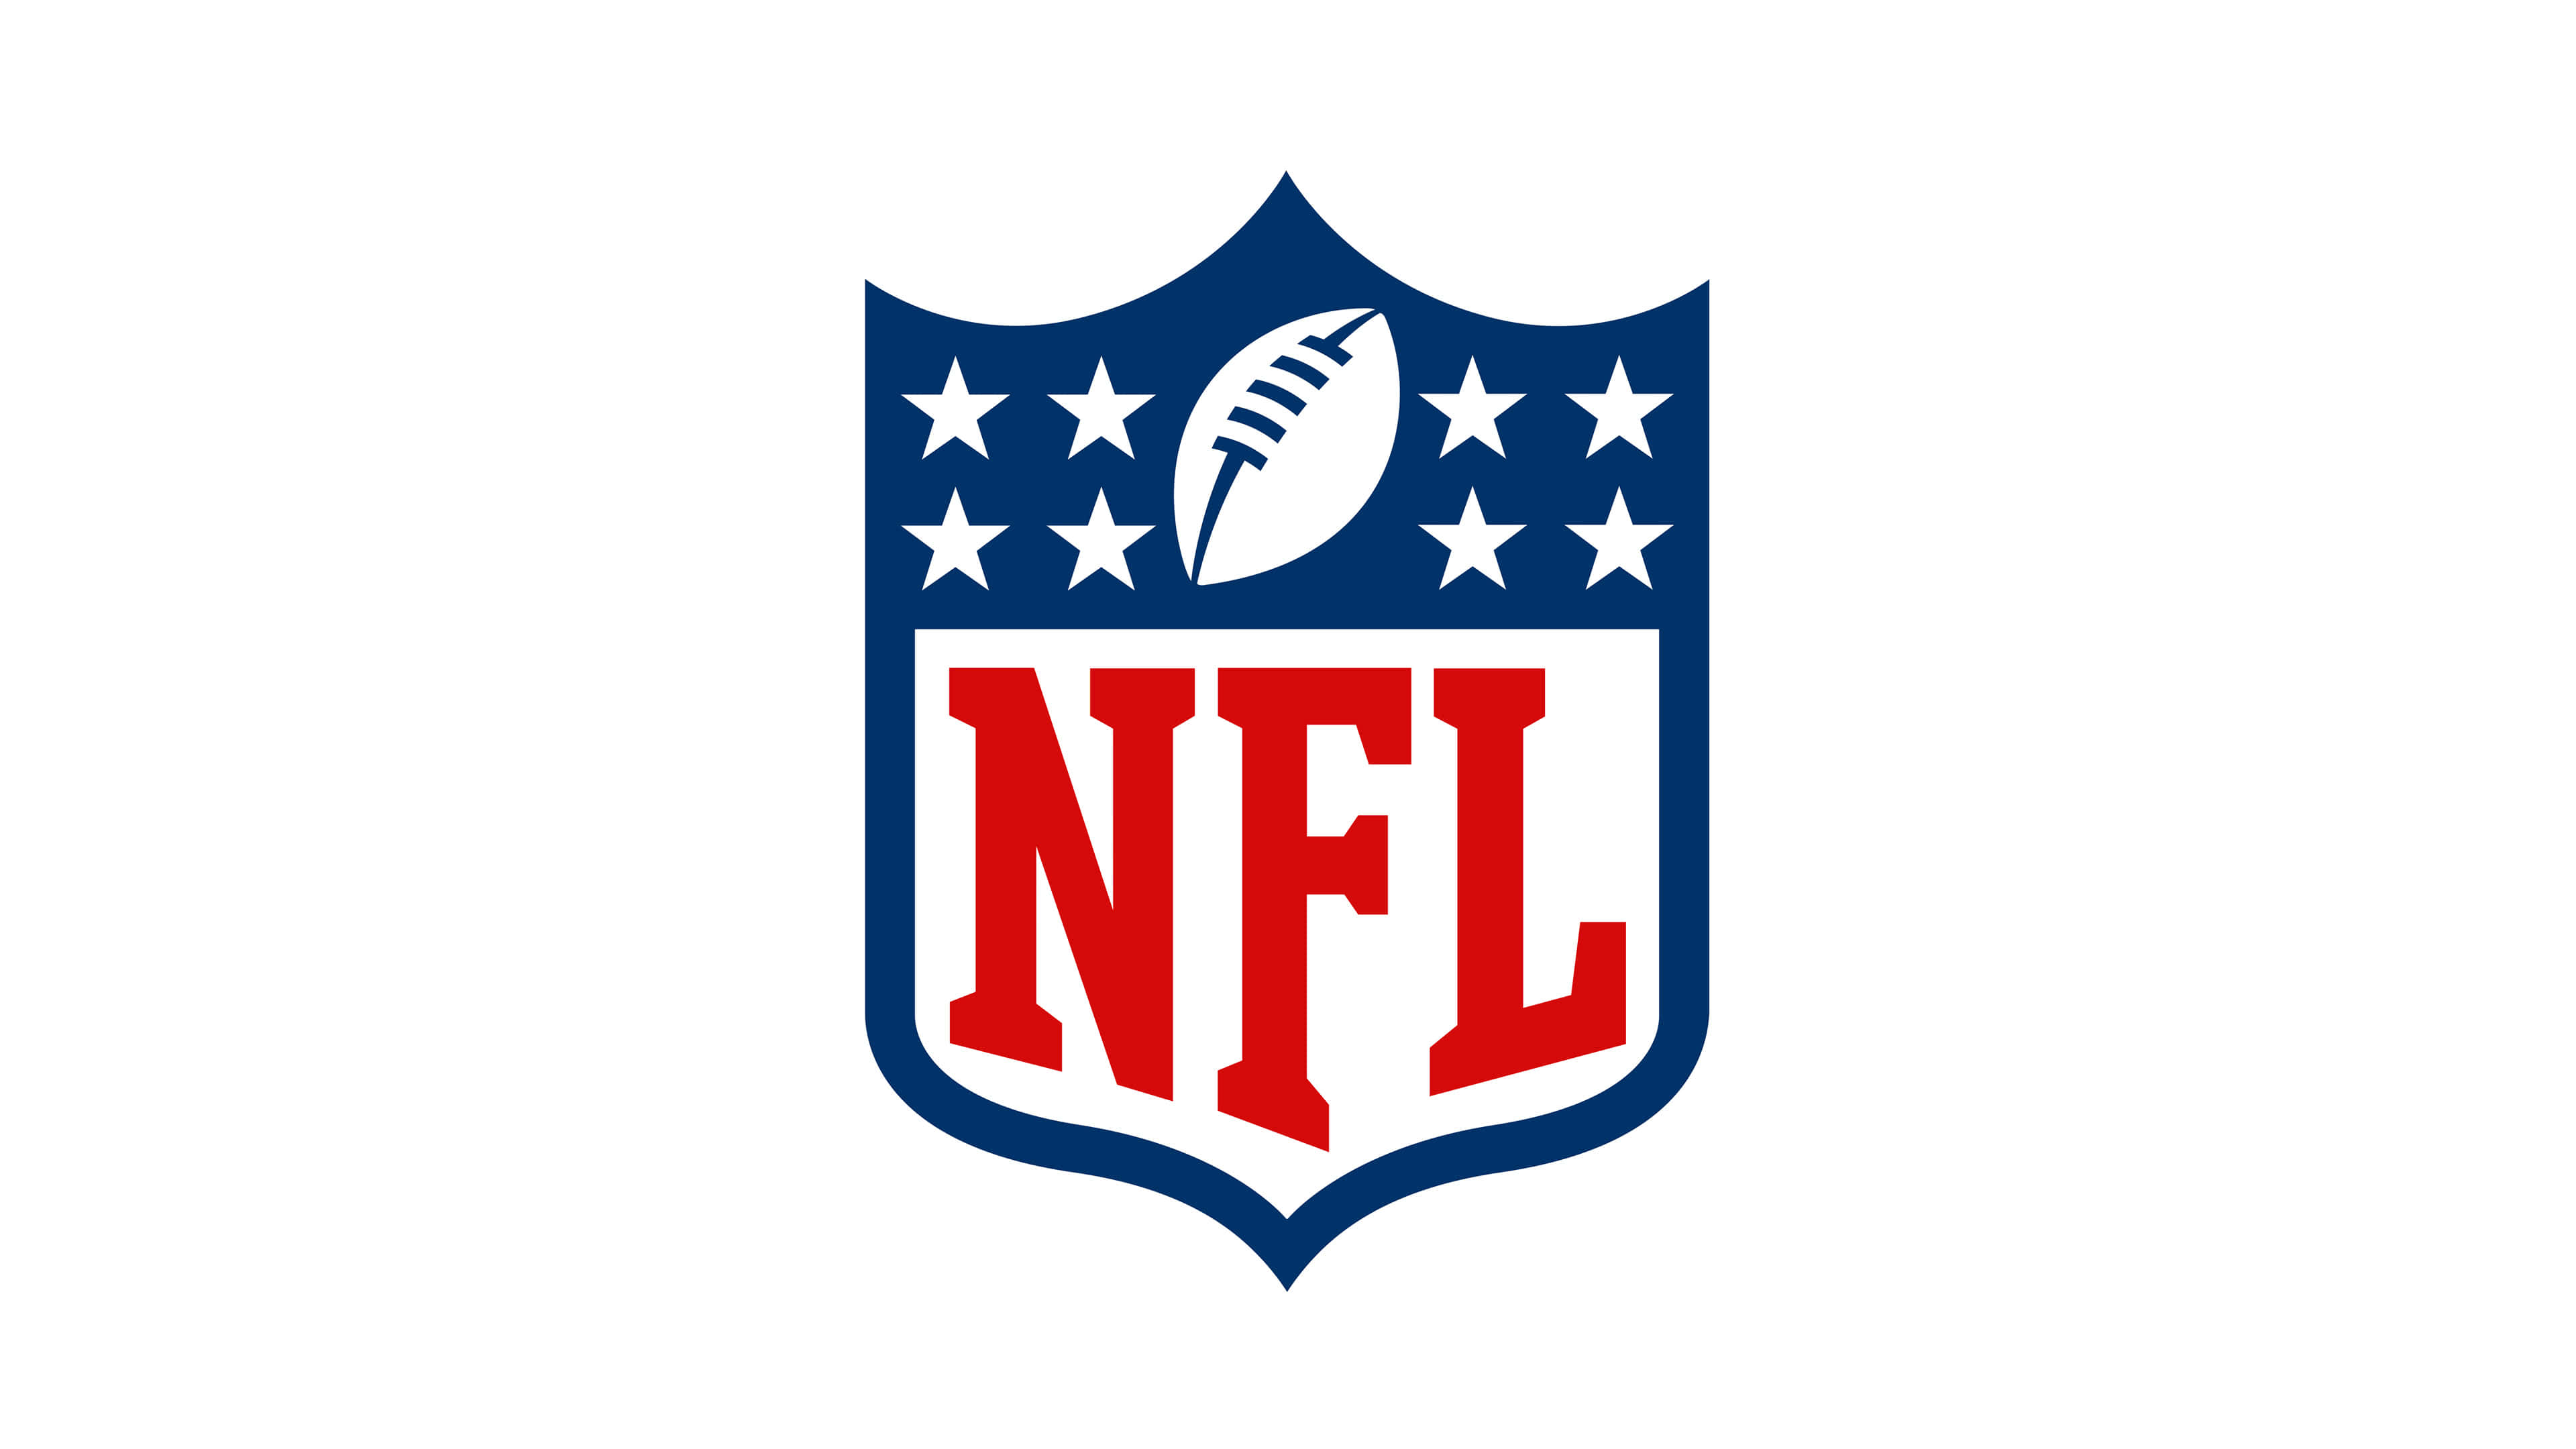 National Football League Nfl Logo Uhd 4k Wallpaper Pixelz